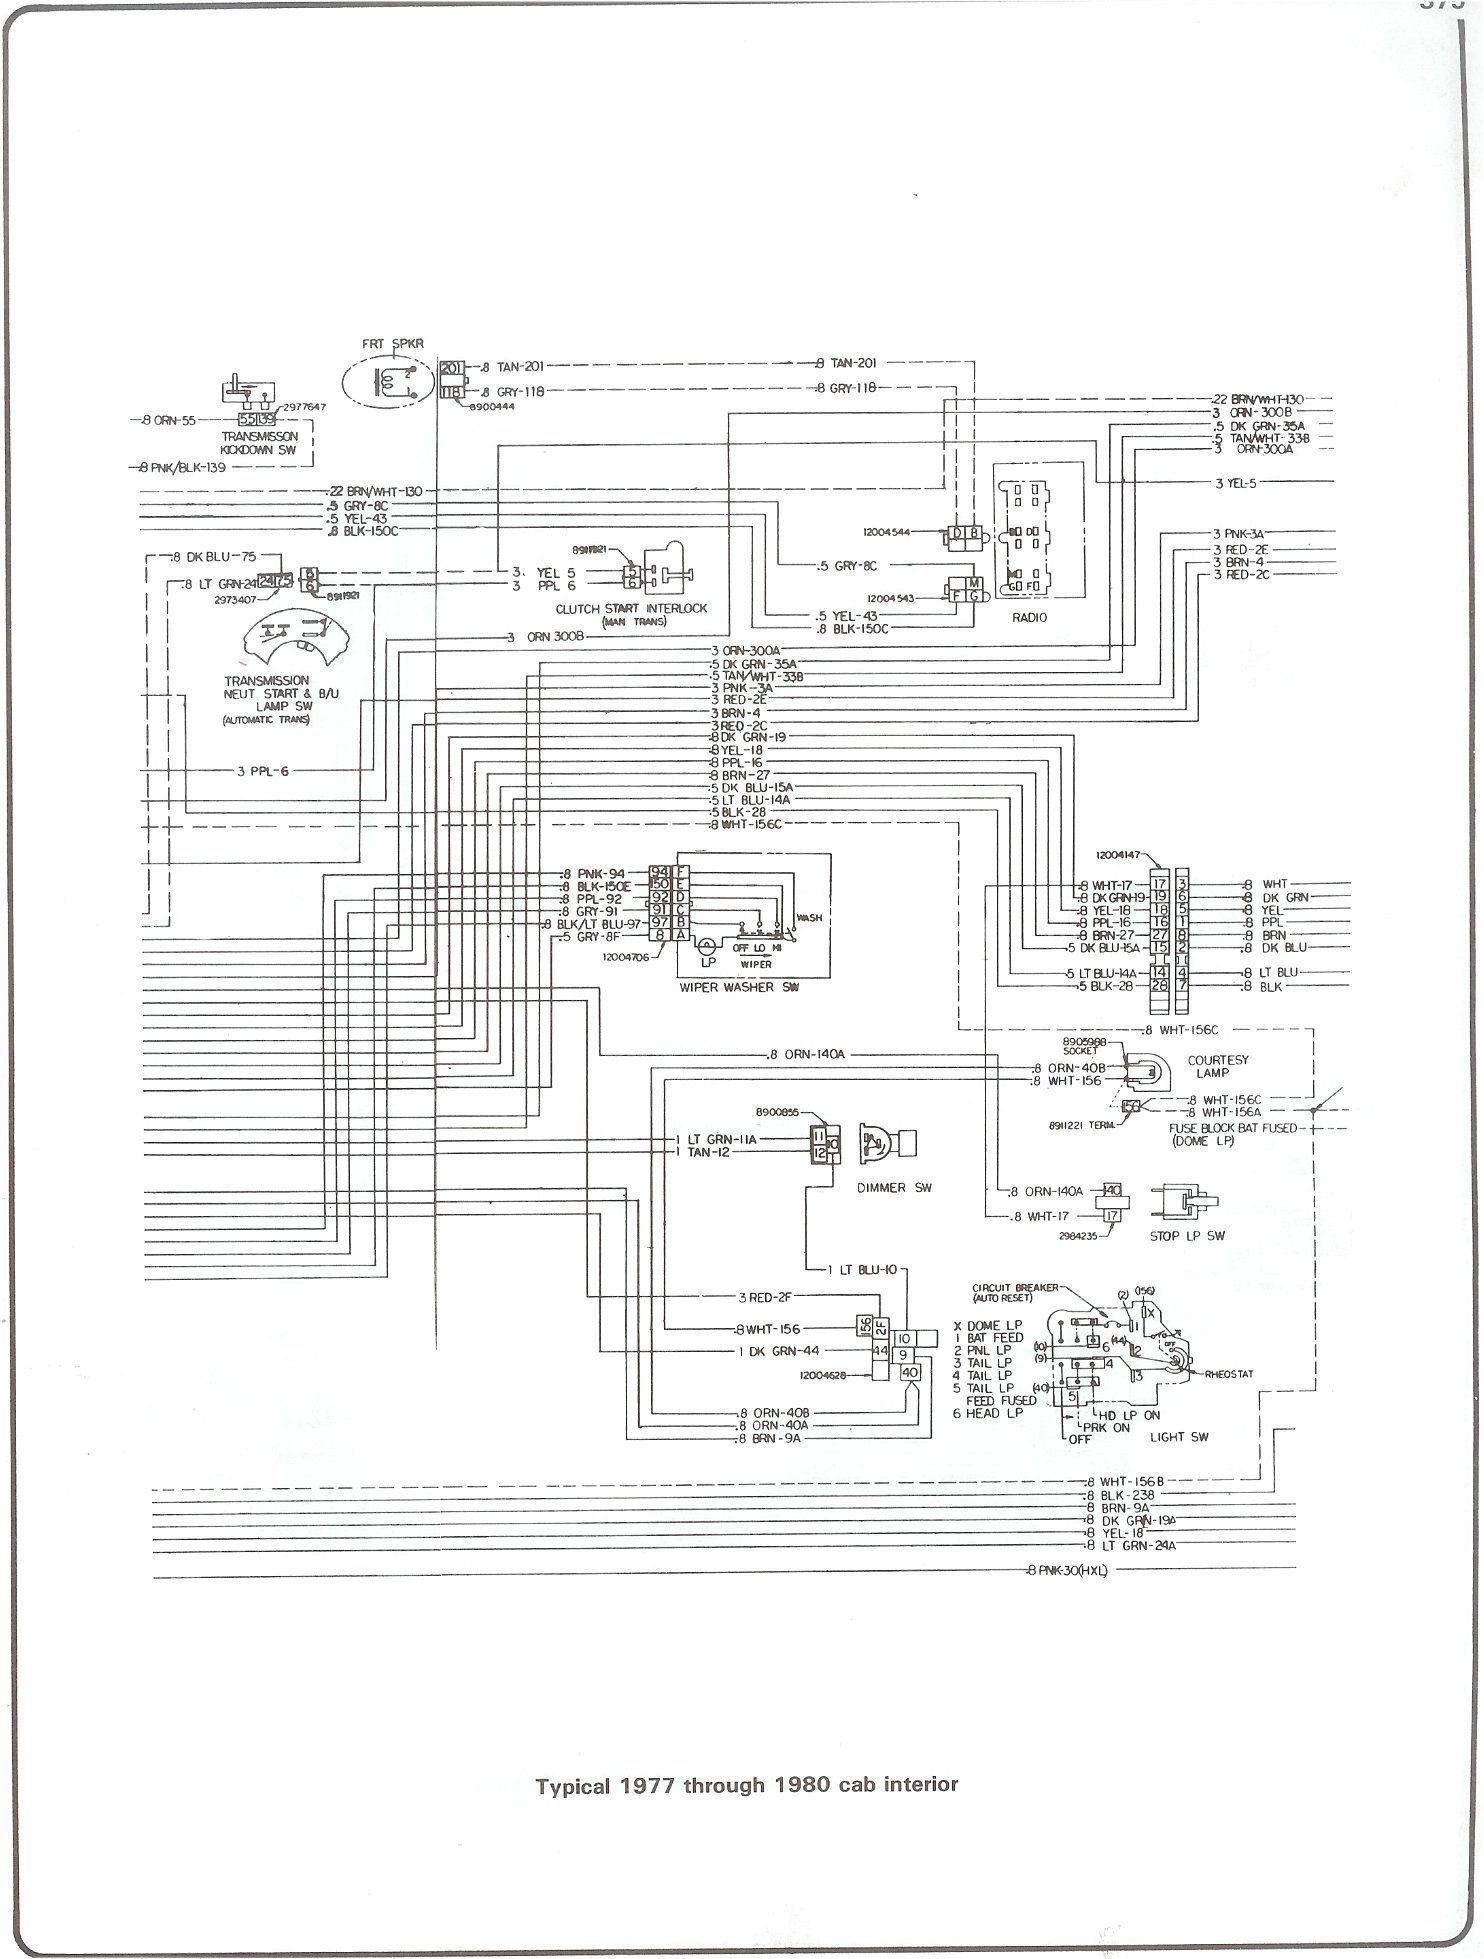 77 80_cab_inter chevy truck underhood wiring diagrams chuck's chevy truck pages Single Phase Compressor Wiring Diagram at bayanpartner.co